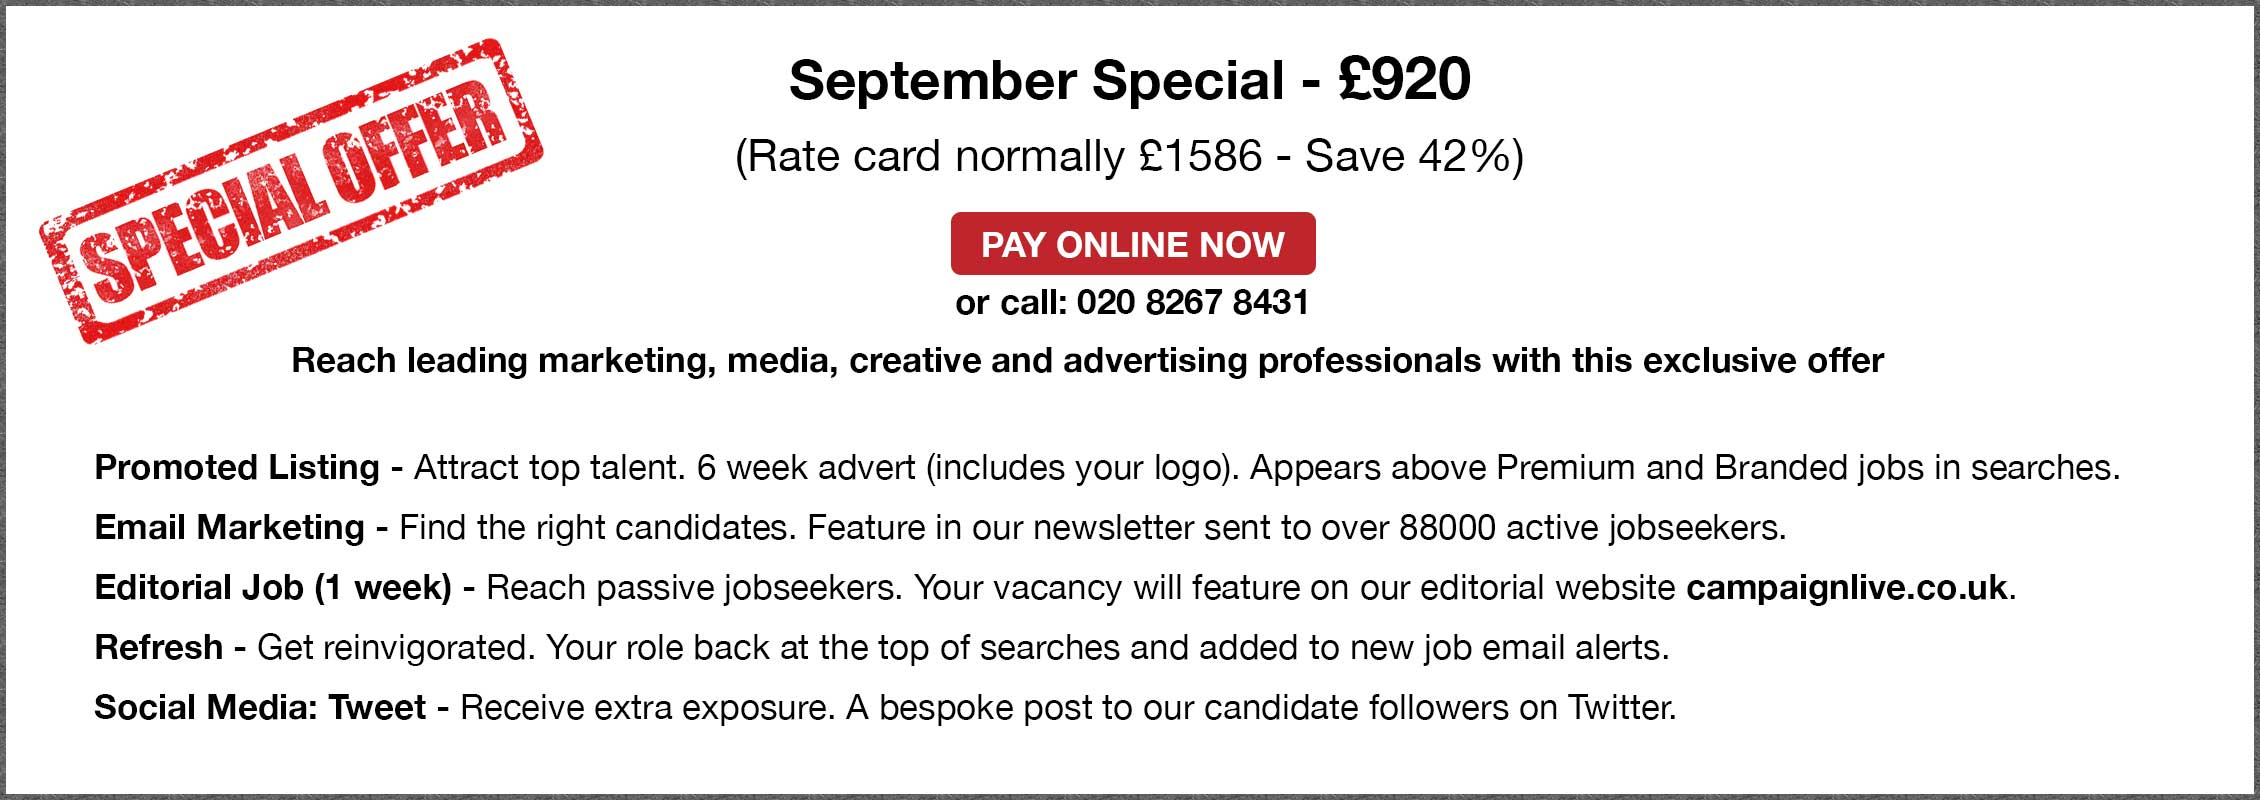 September Special - £920. (Rate card normally £1586 - Save 42%. PAY ONLINE NOW or call: 020 8267 8431. Reach leading marketing, media, creative and advertising professionals with this exclusive offer. Promoted Listing - Attract top talent. 6 week advert (includes your logo). Appears above Premium and Branded jobs in searches. Email Marketing - Find the right candidates. Feature in our newsletter sent to over 88000 active jobseekers. Editorial Job (1 week) - Reach passive jobseekers. Your vacancy will feature on our editorial website campaignlive.co.uk. Refresh - Get reinvigorated. Your role back at the top of searches and added to new job email alerts. Social Media: Tweet - Receive extra exposure. A bespoke post to our candidate followers on Twitter.